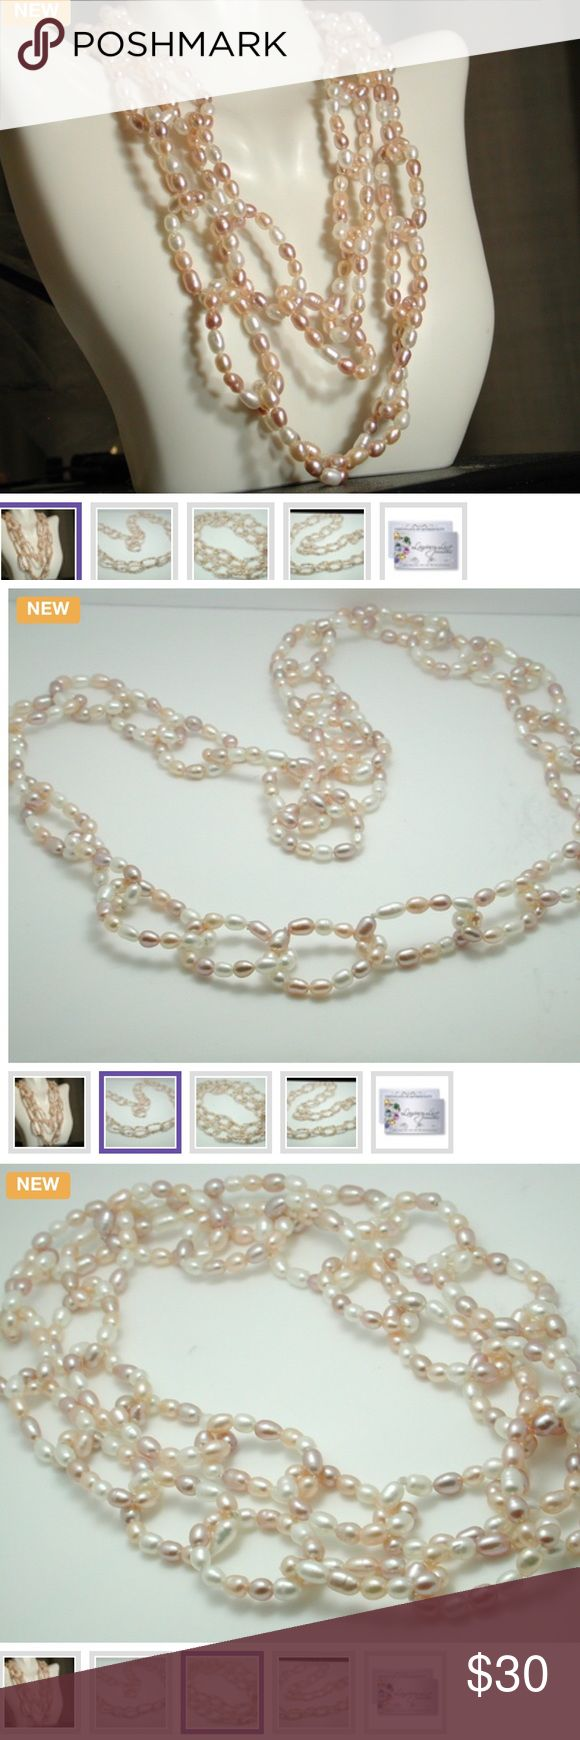 "Freshwater Pearls 34"" Lucien Piccard Necklace This beautiful necklace contains Cultured Cream Freshwater Pearls. The weight of this necklace is 64.9 grams. The necklace measures 35"" long. Don't Miss Out !!! Lucien Piccard Jewelry Necklaces"